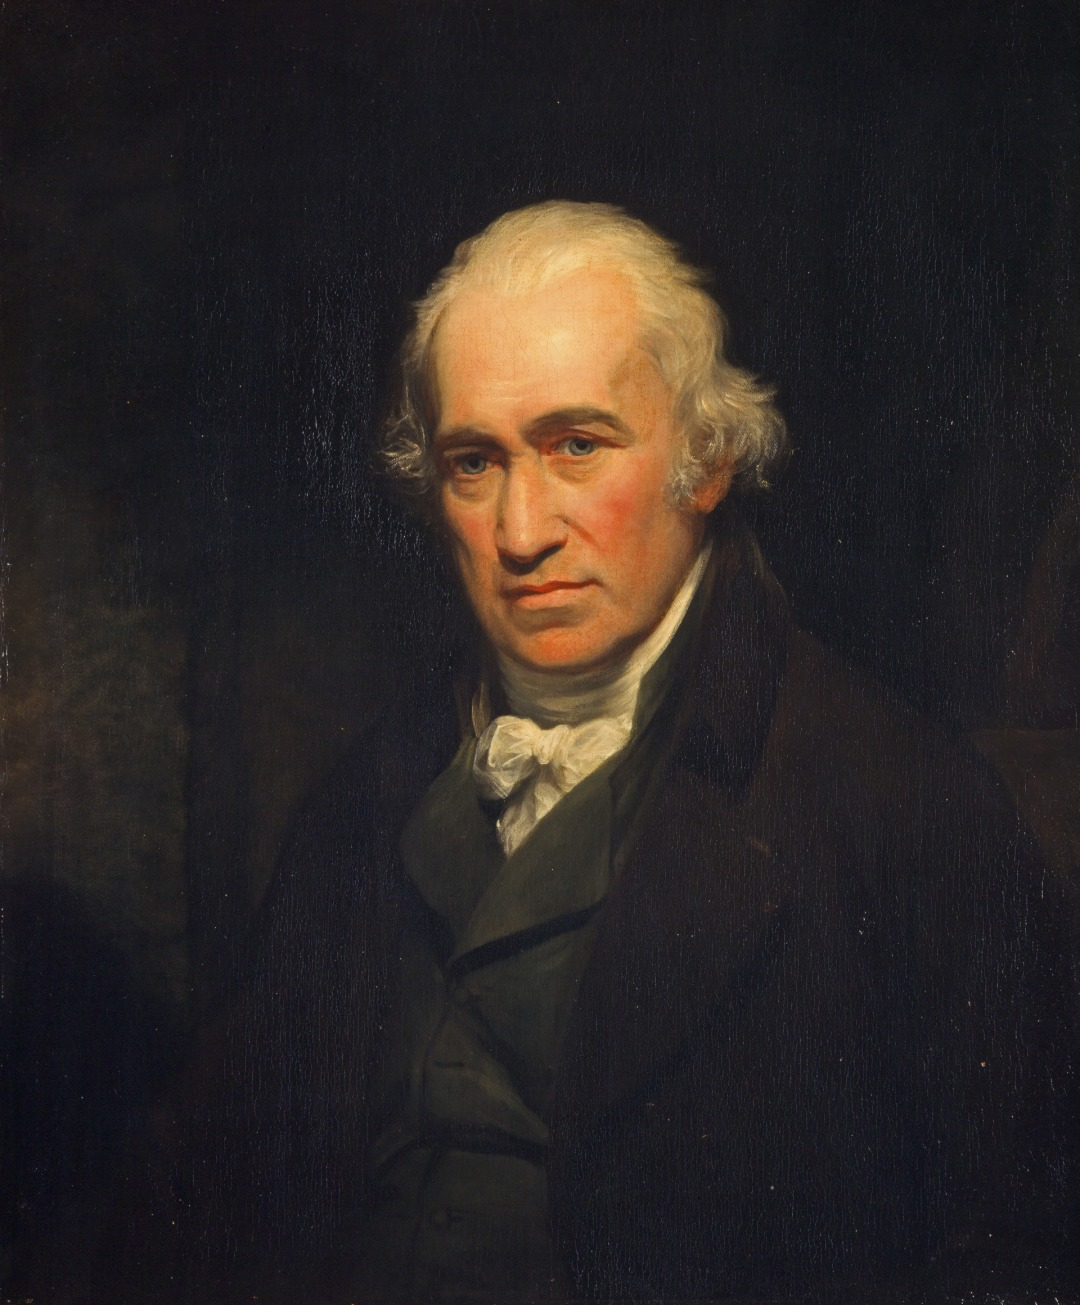 Half-length oil portrait of James Watt by John Partridge, after an original by Sir William Beechey.